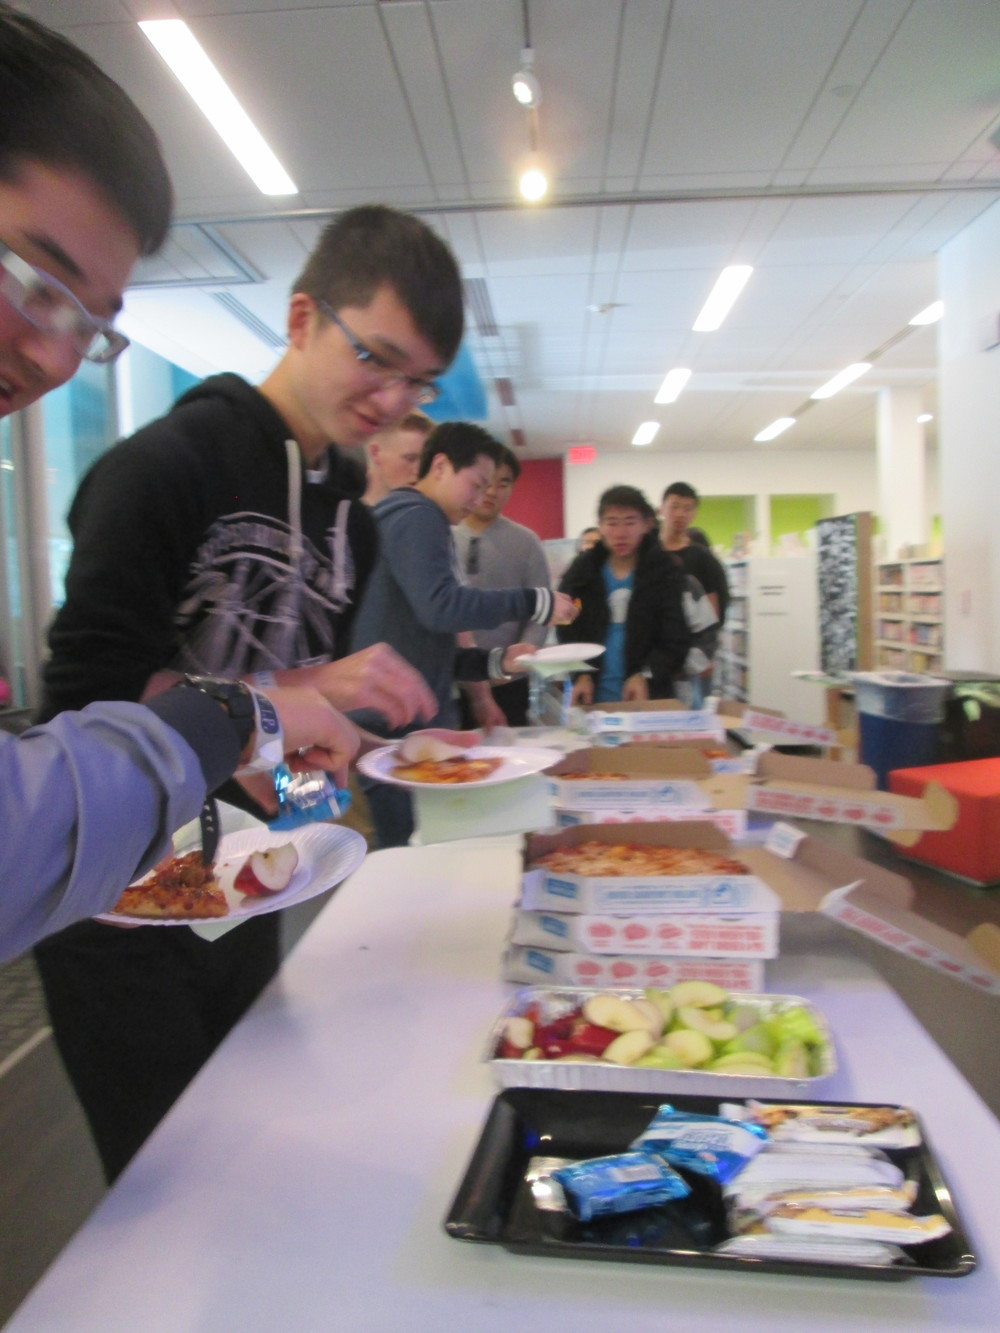 Hungry hackers @TheMixatSFP: Pizza is going...